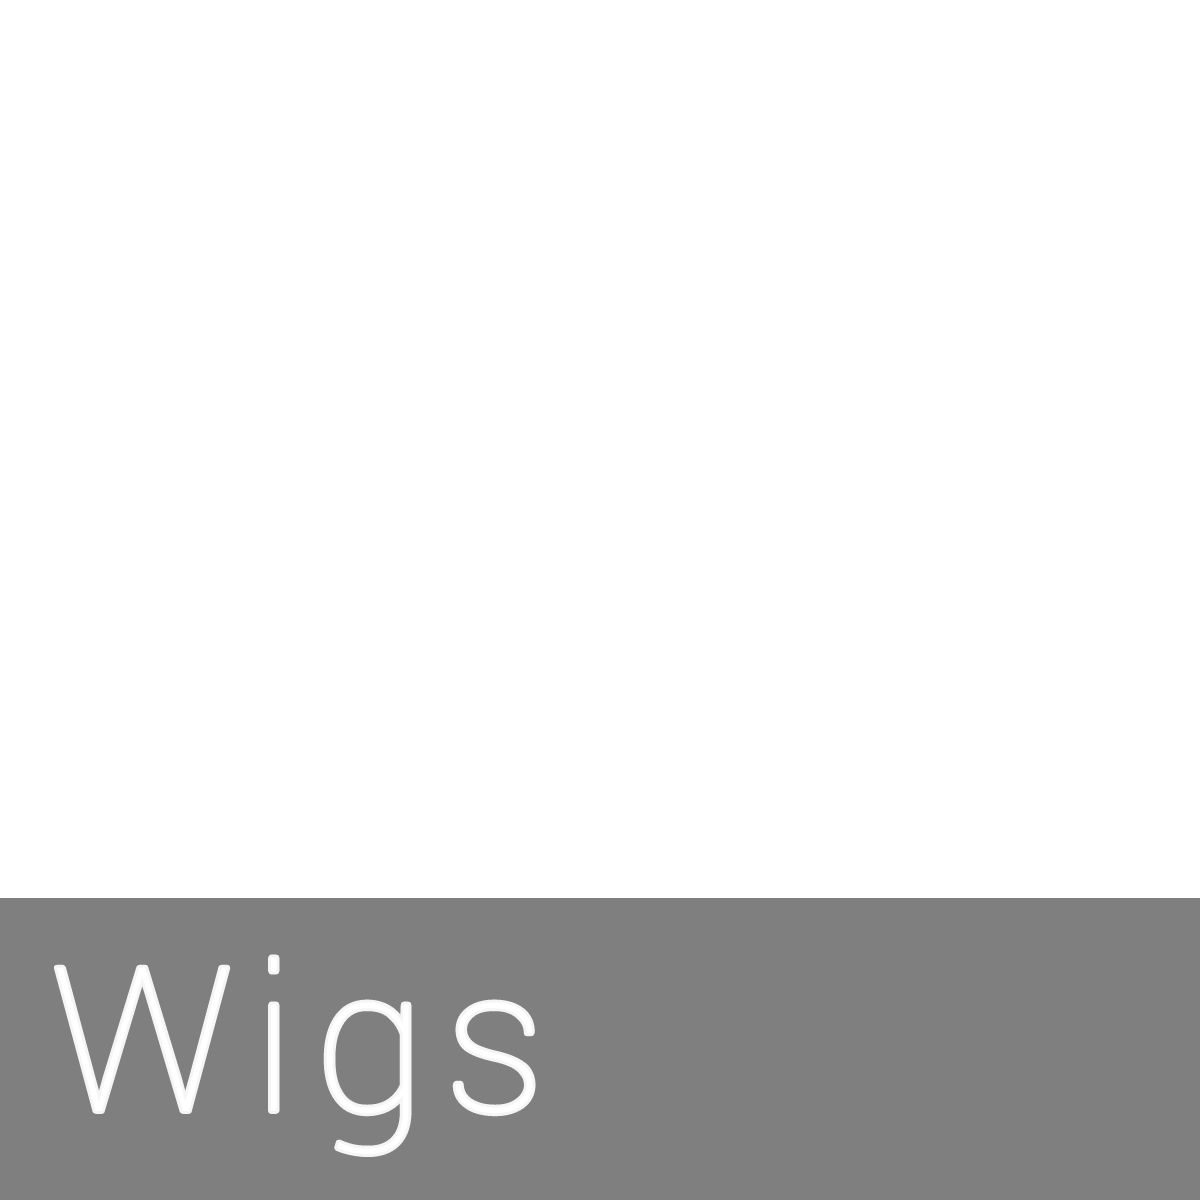 voga-wigs-and-hair-add-ons-products-page-box-link-wigs